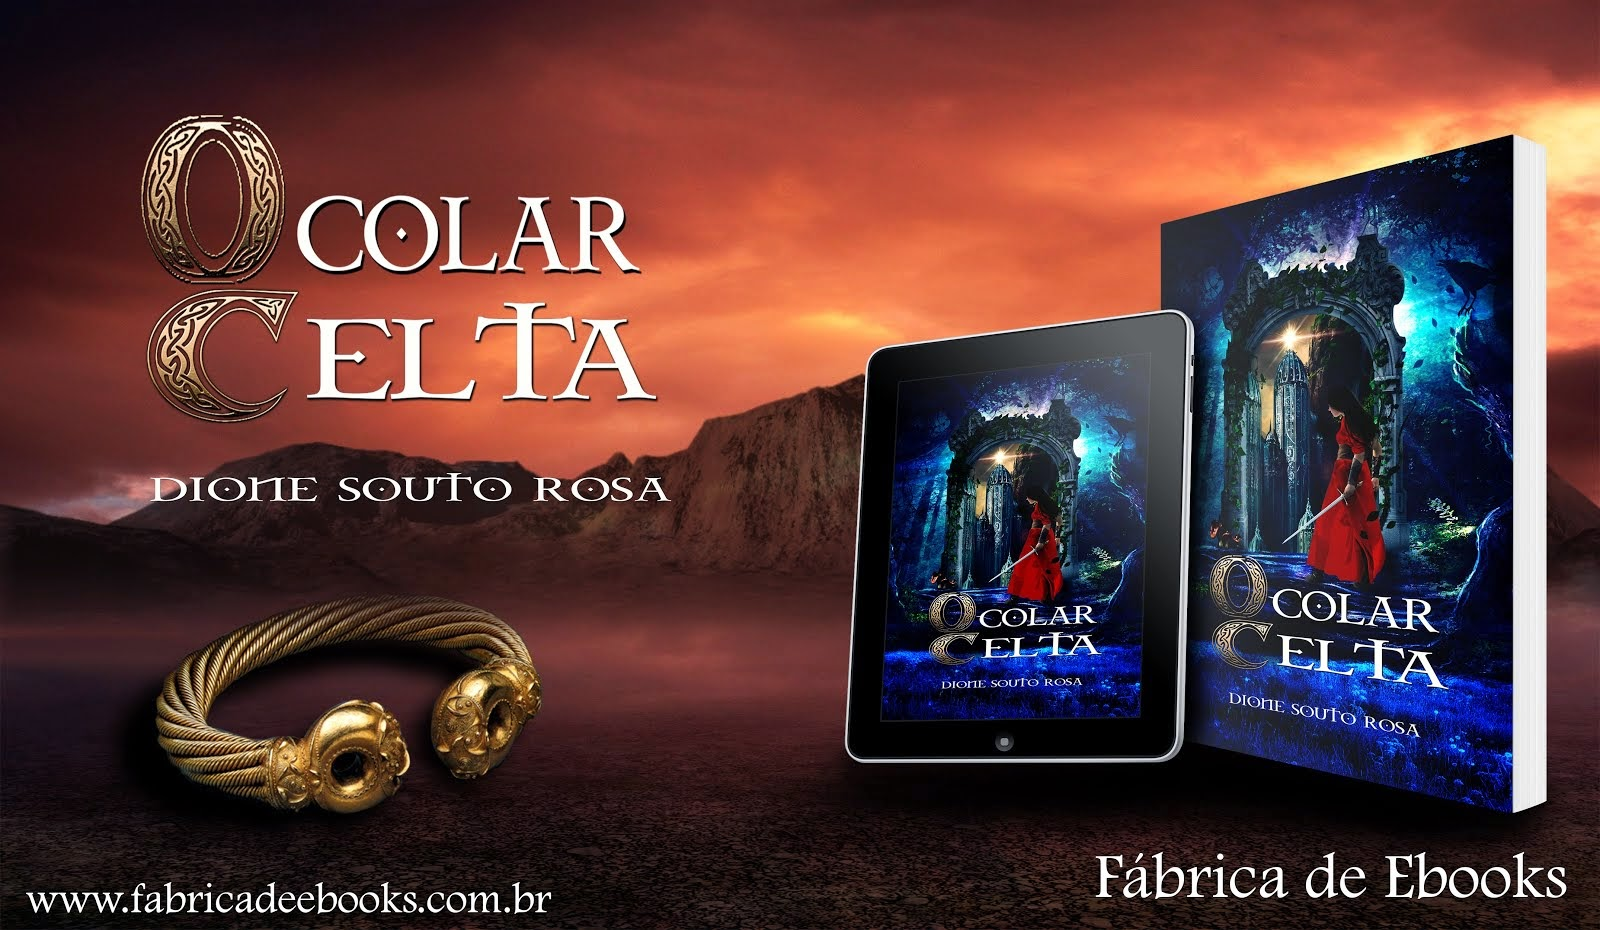 BOOK TRAILER O COLAR CELTA